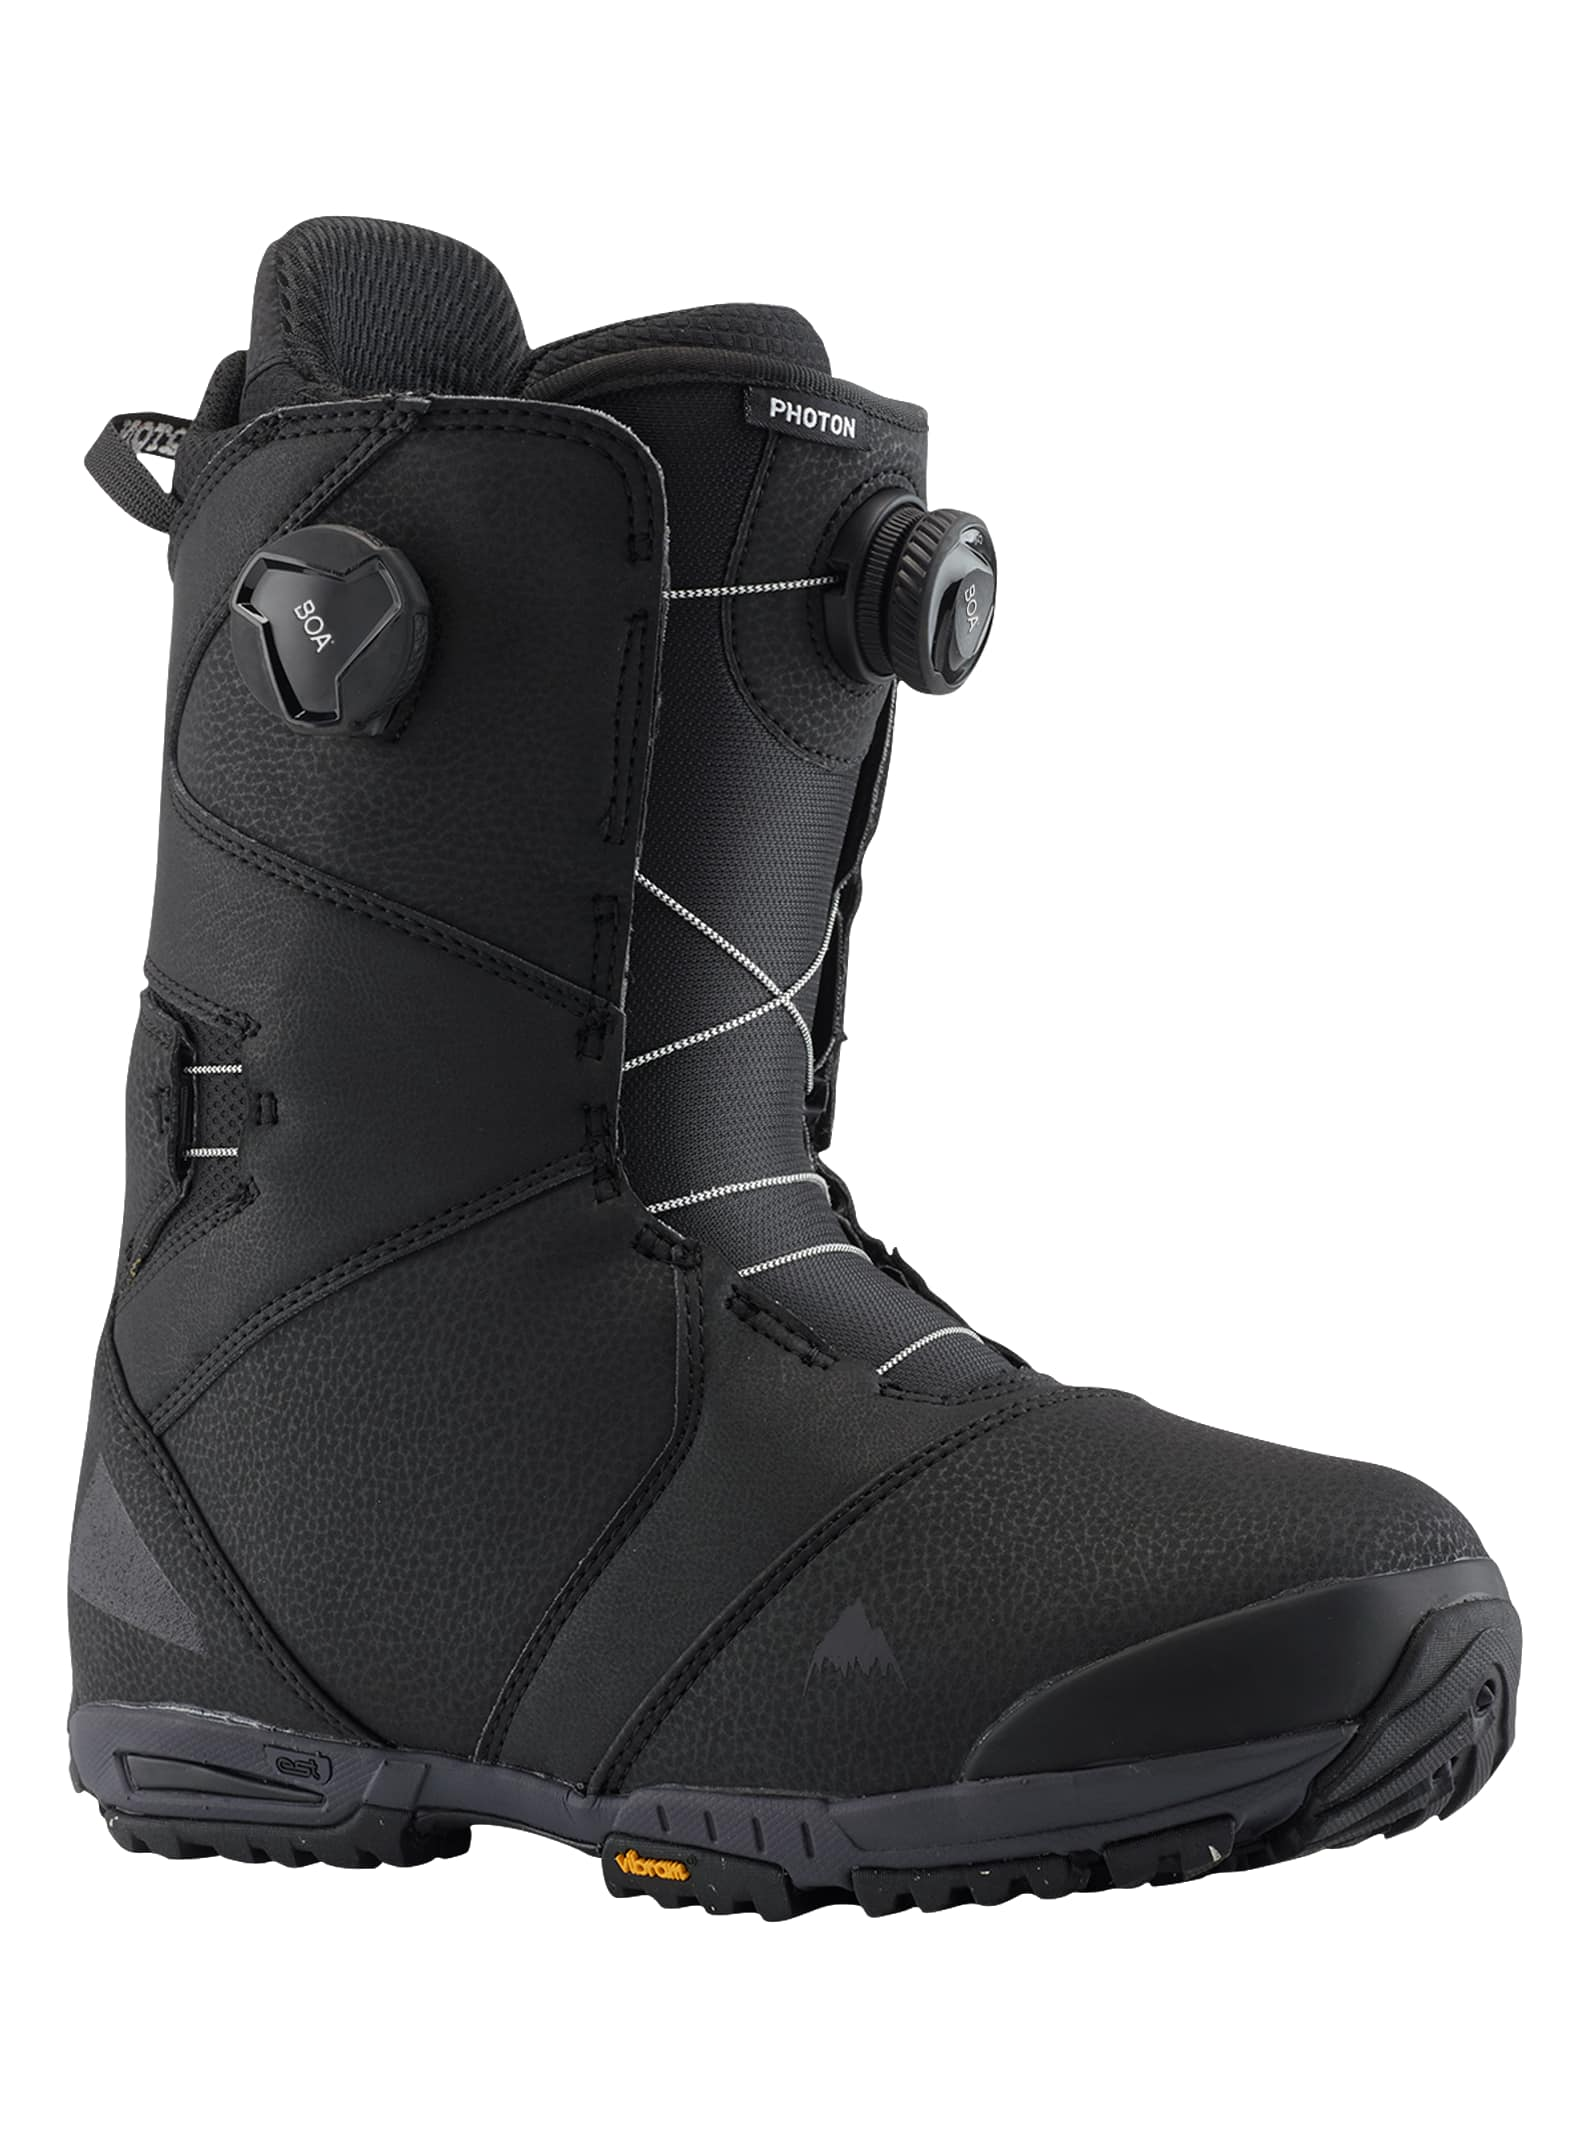 Boa Kopen Men S Burton Photon Boa Wide Snowboard Boot